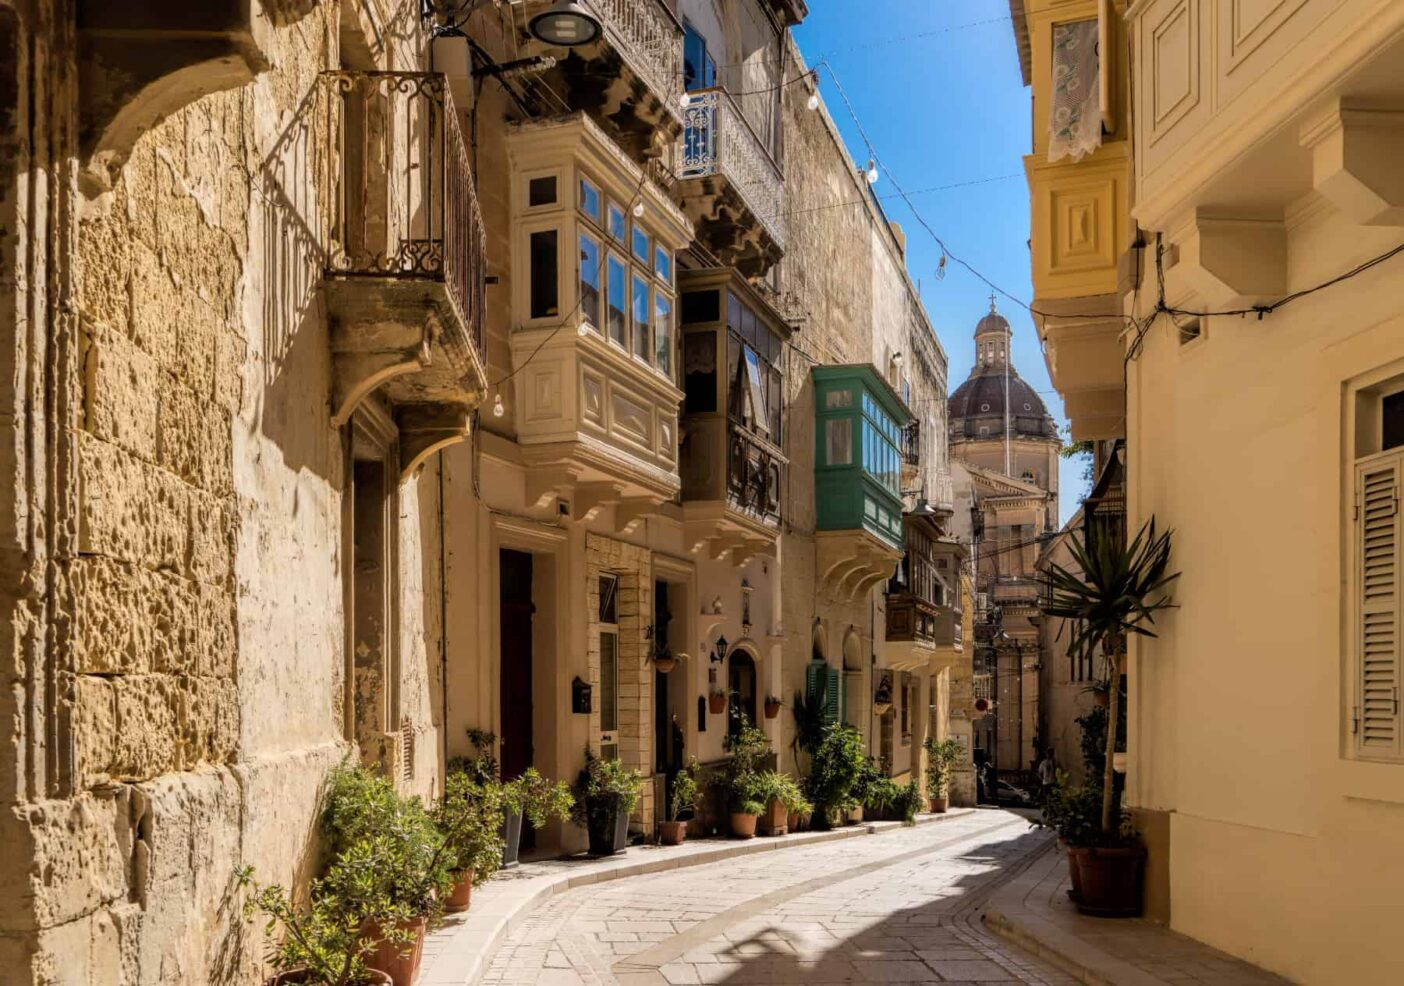 Cozy streets of Maltese towns adorned with traditional houses